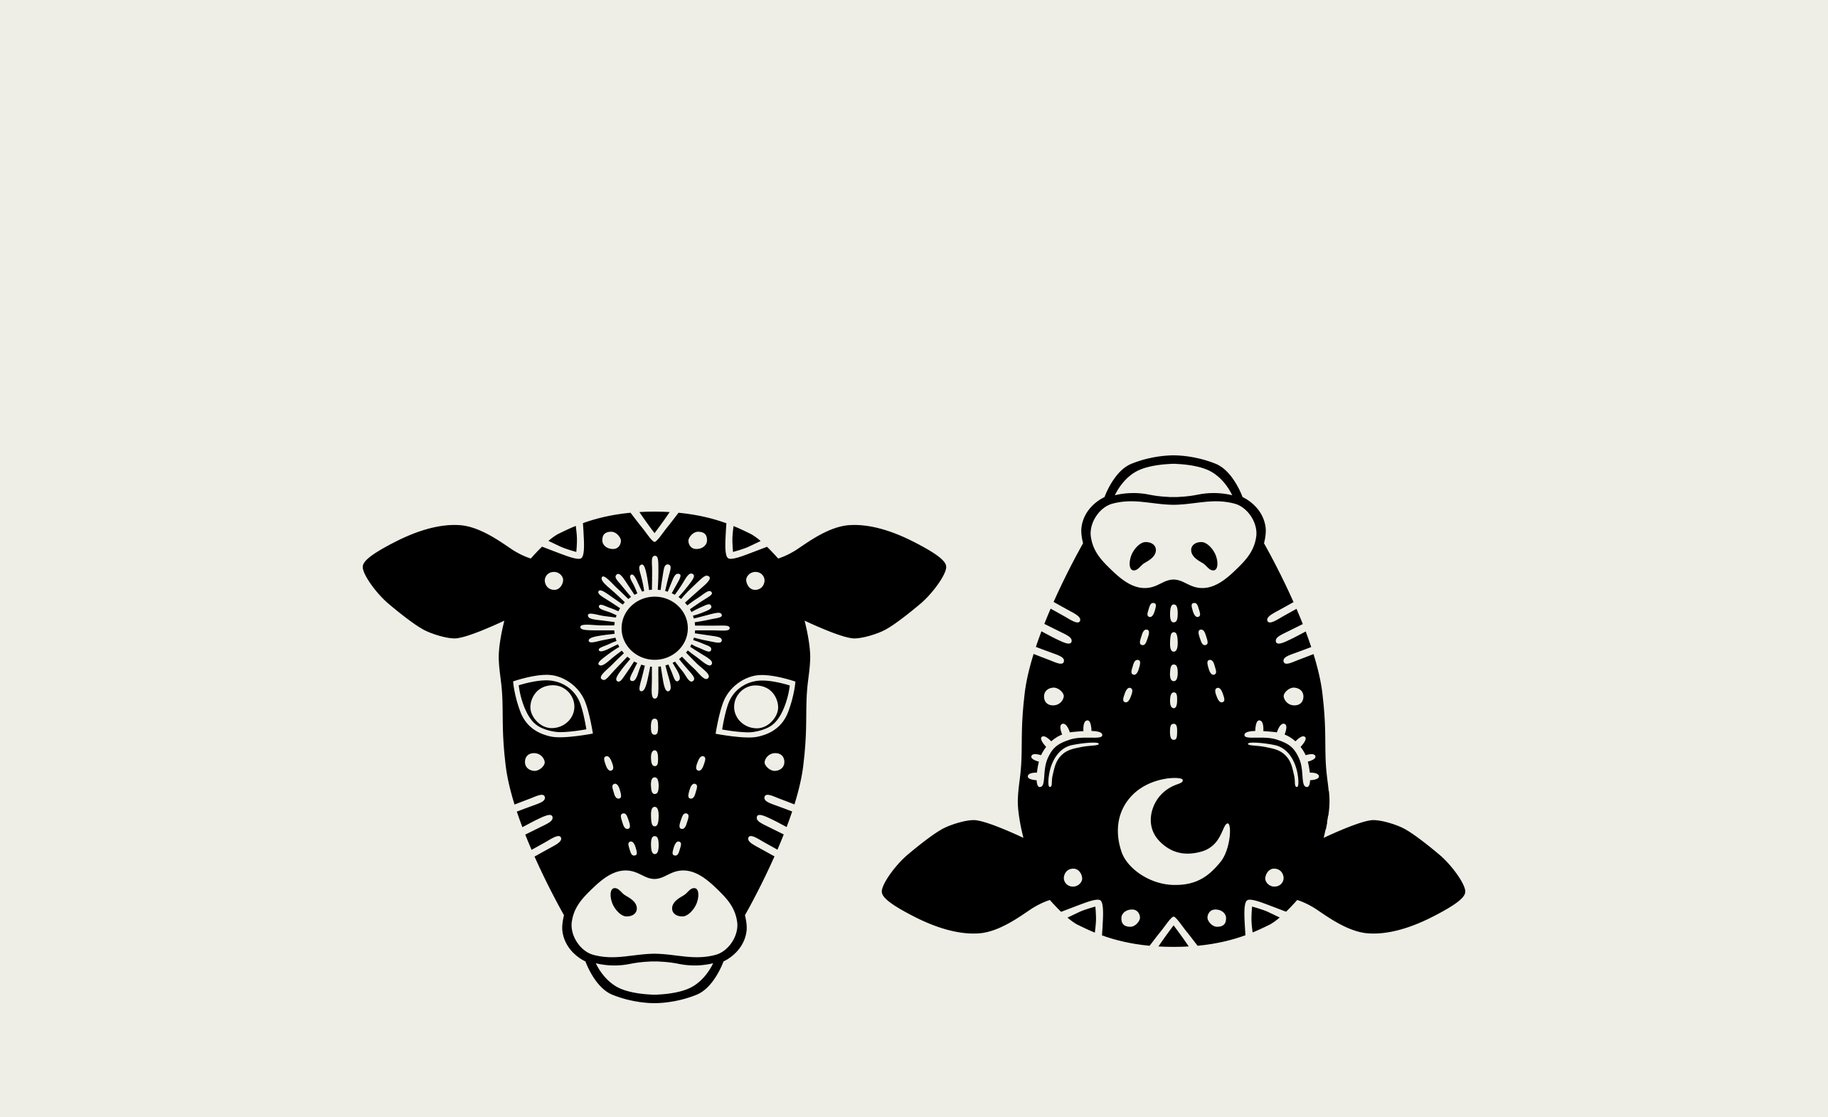 WDOM cow illustrations